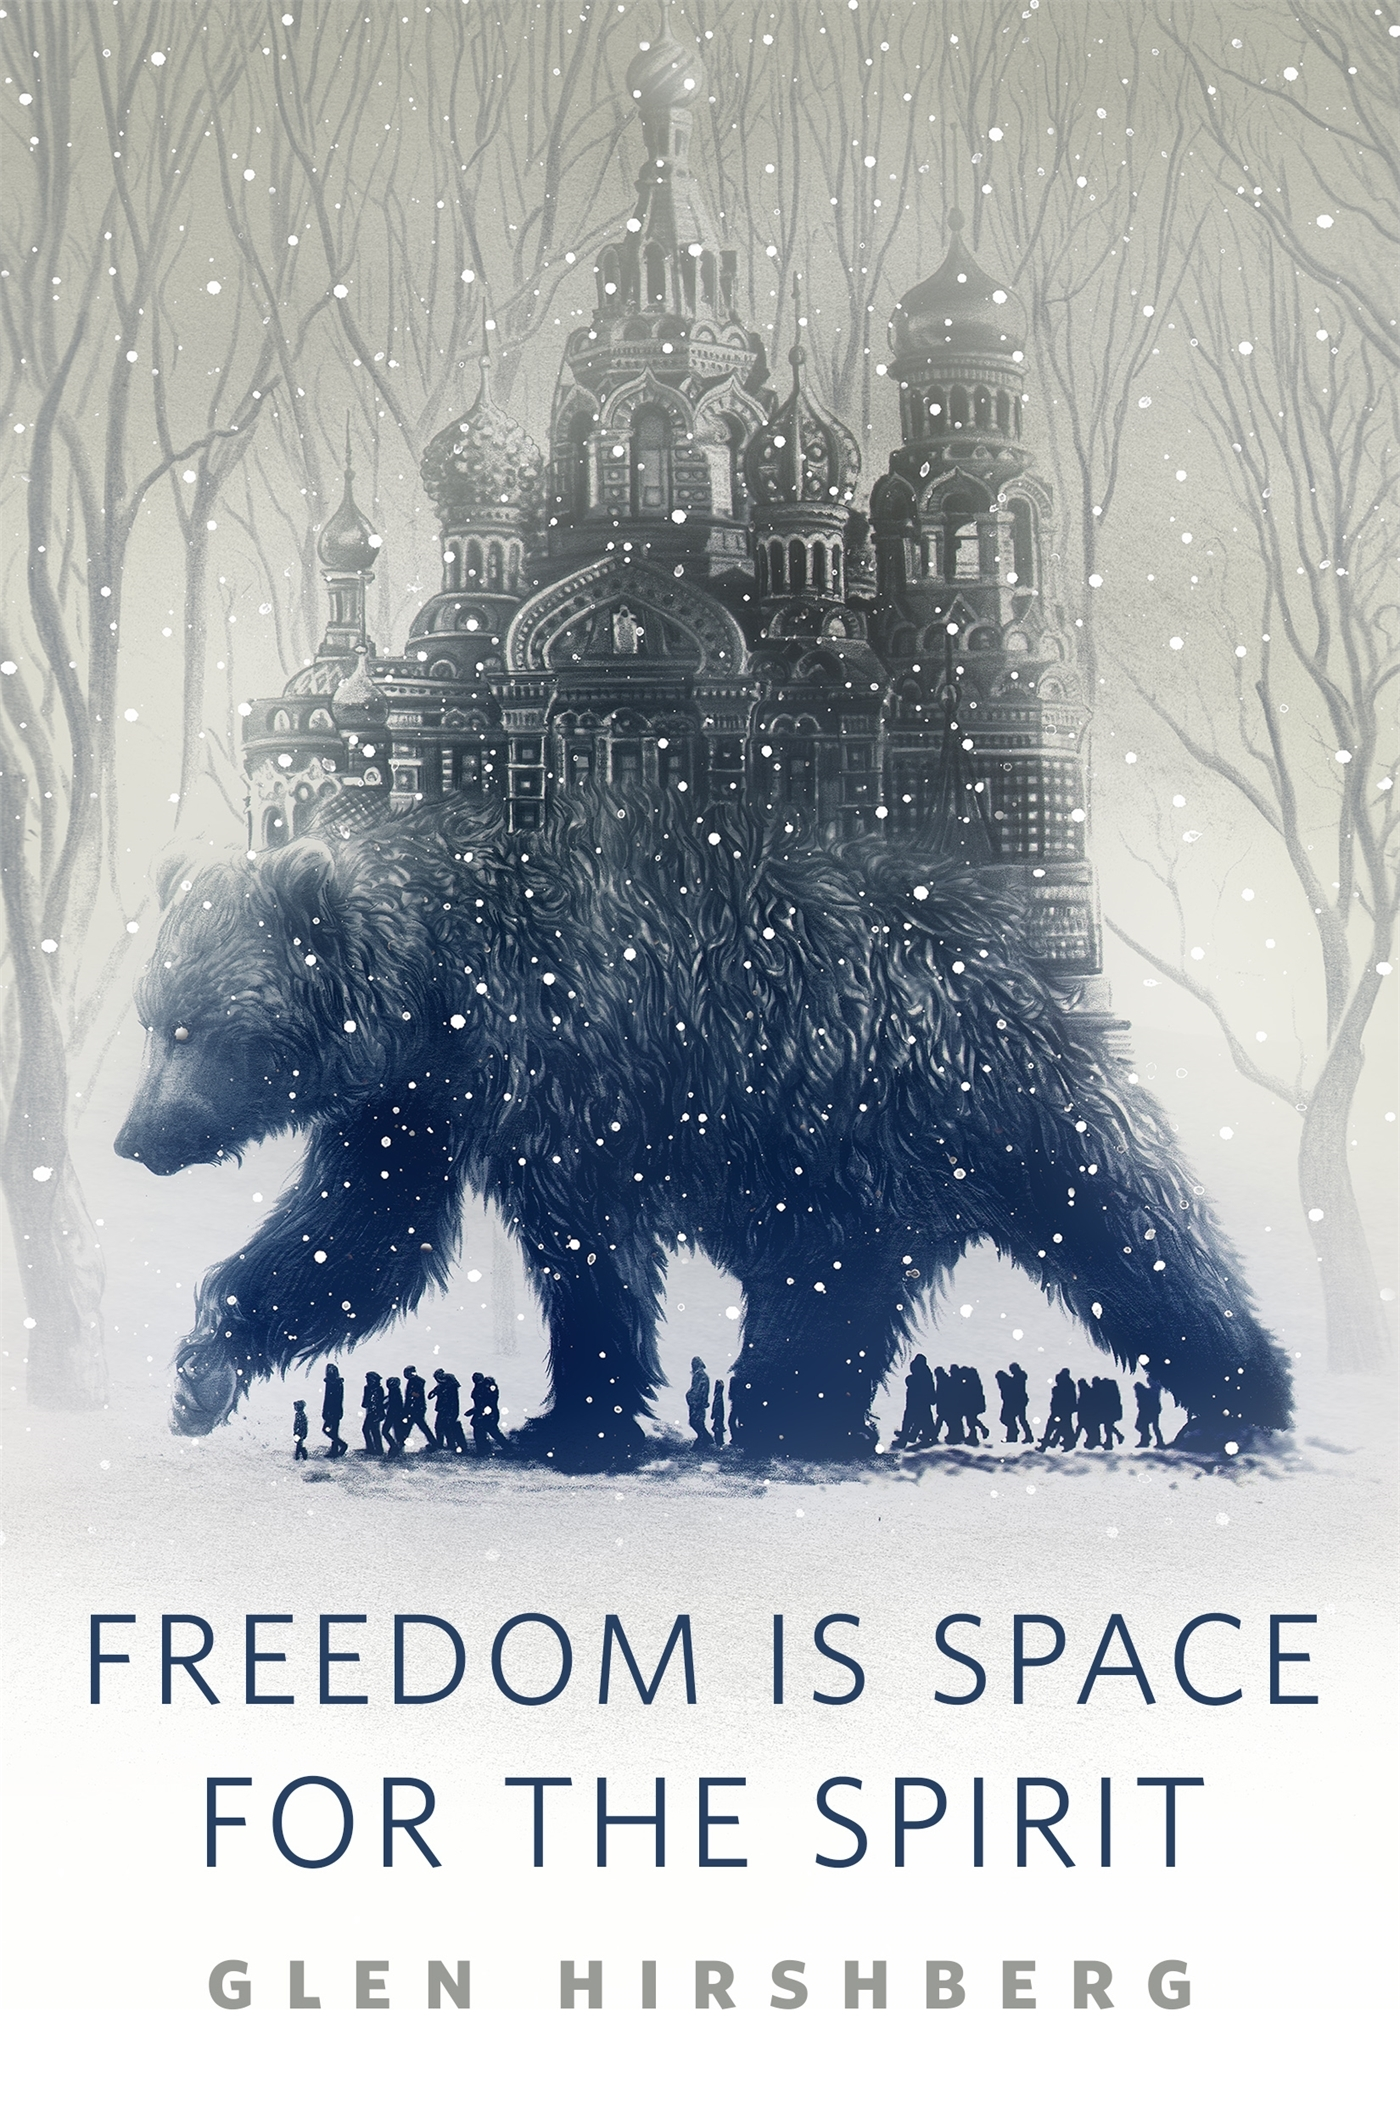 Freedom is Space for the Spirit by Glen Hirshberg